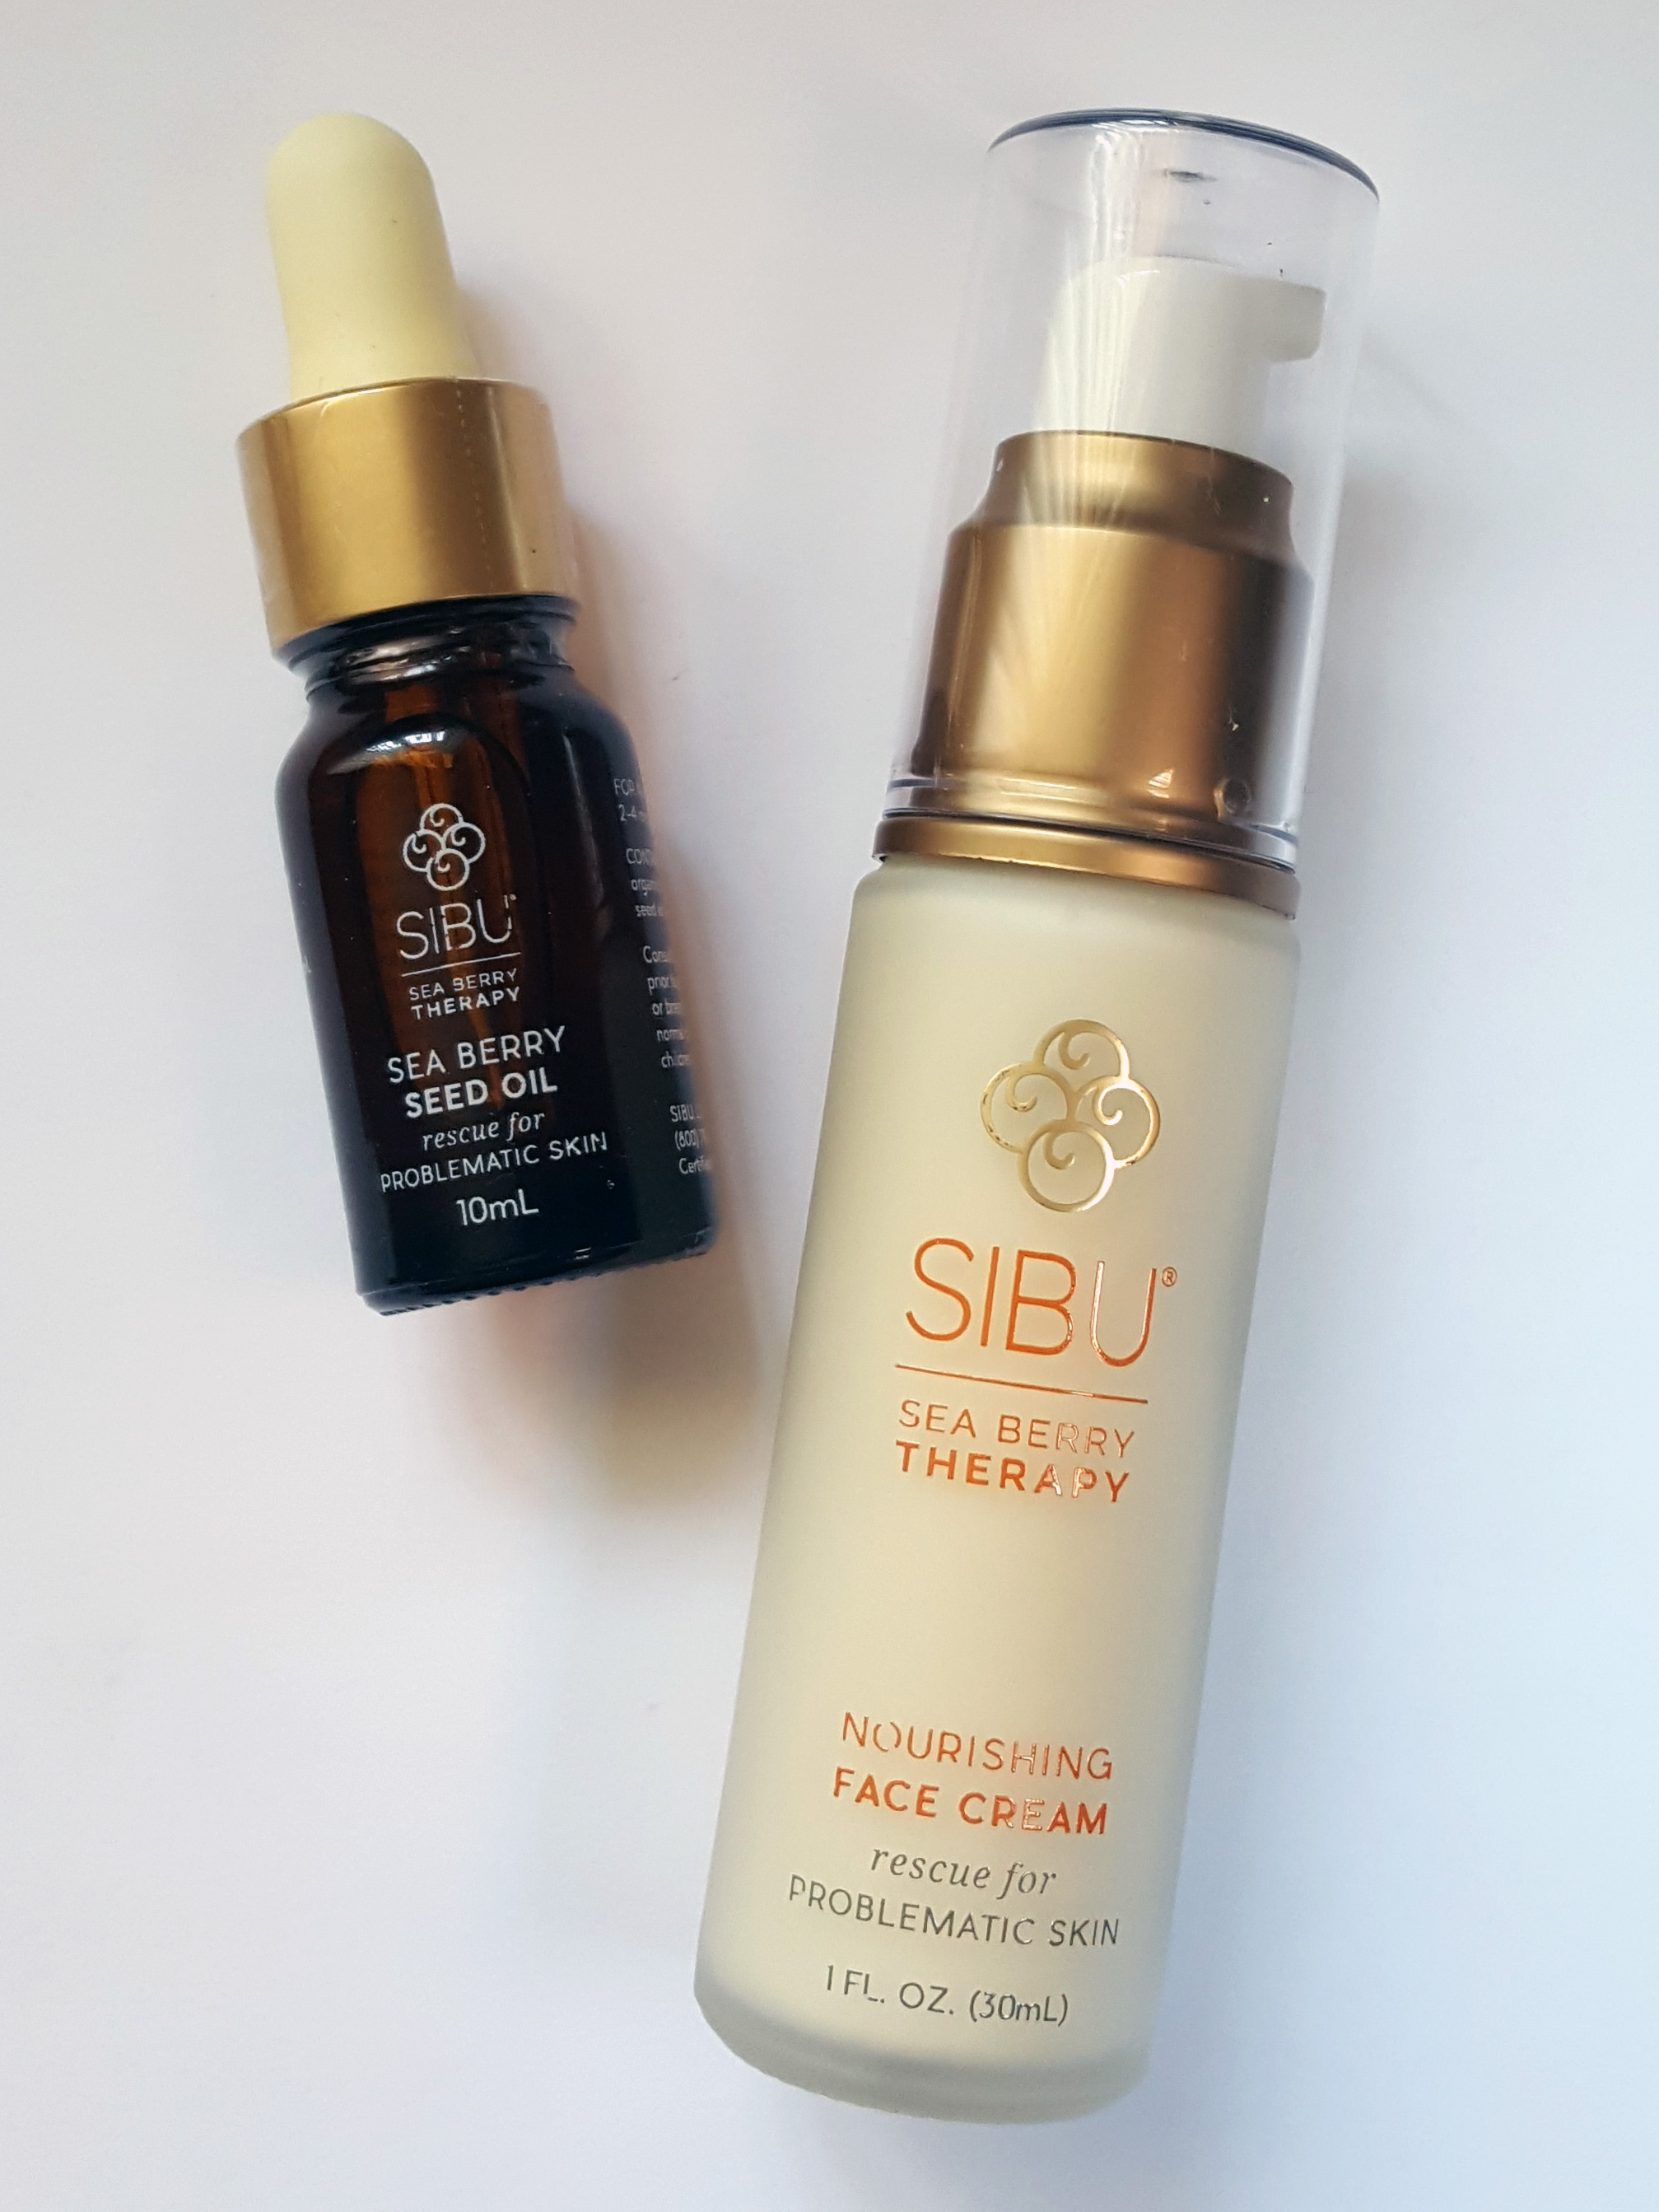 sibu_sea_berry_seed_oil_nourishing_face_cream_flatlay